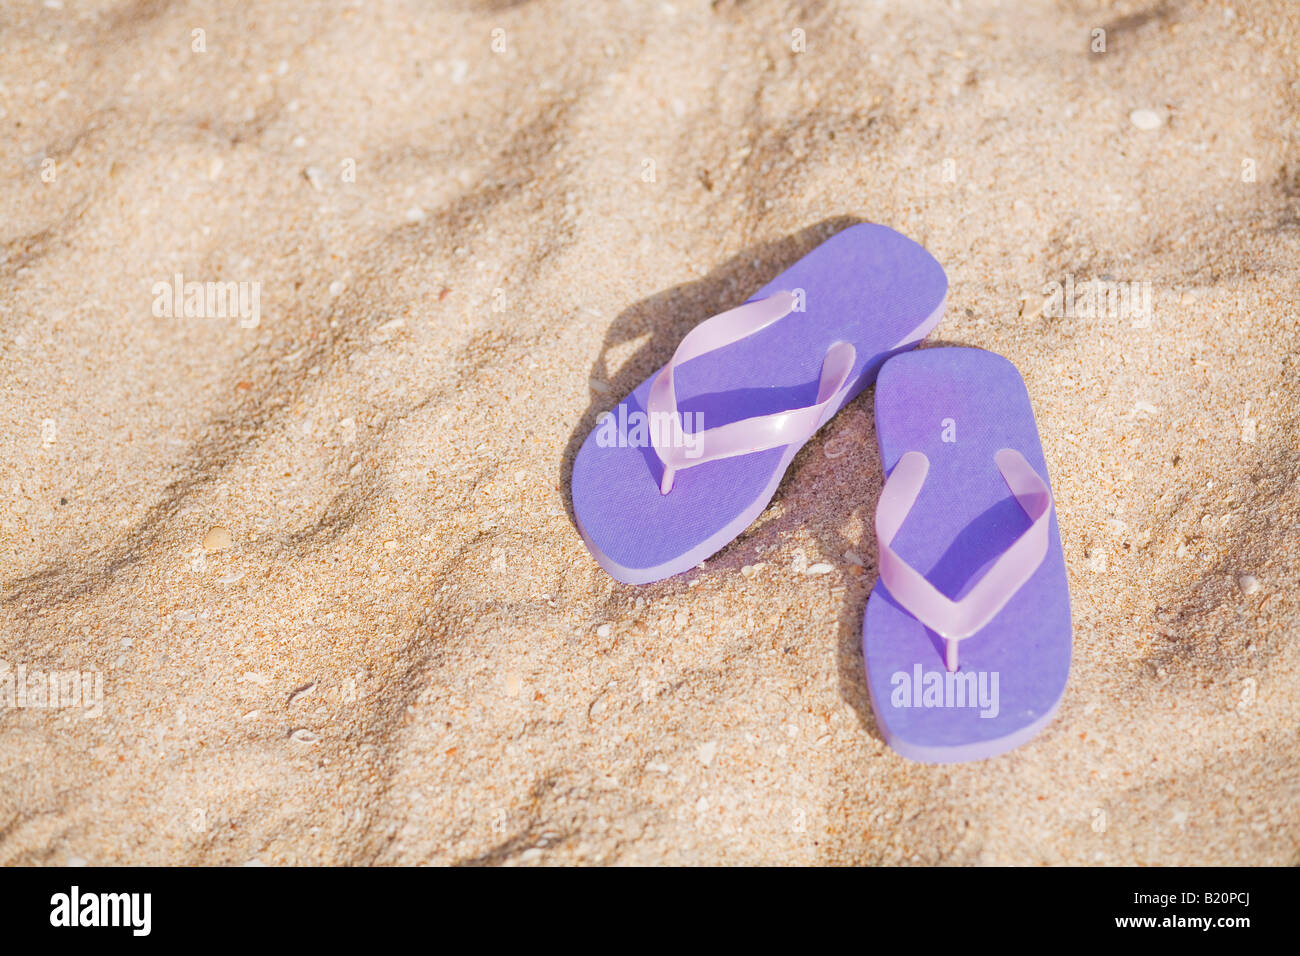 59aa86a664b2 Pair of purple flip flops on the beach Stock Photo  18457282 - Alamy